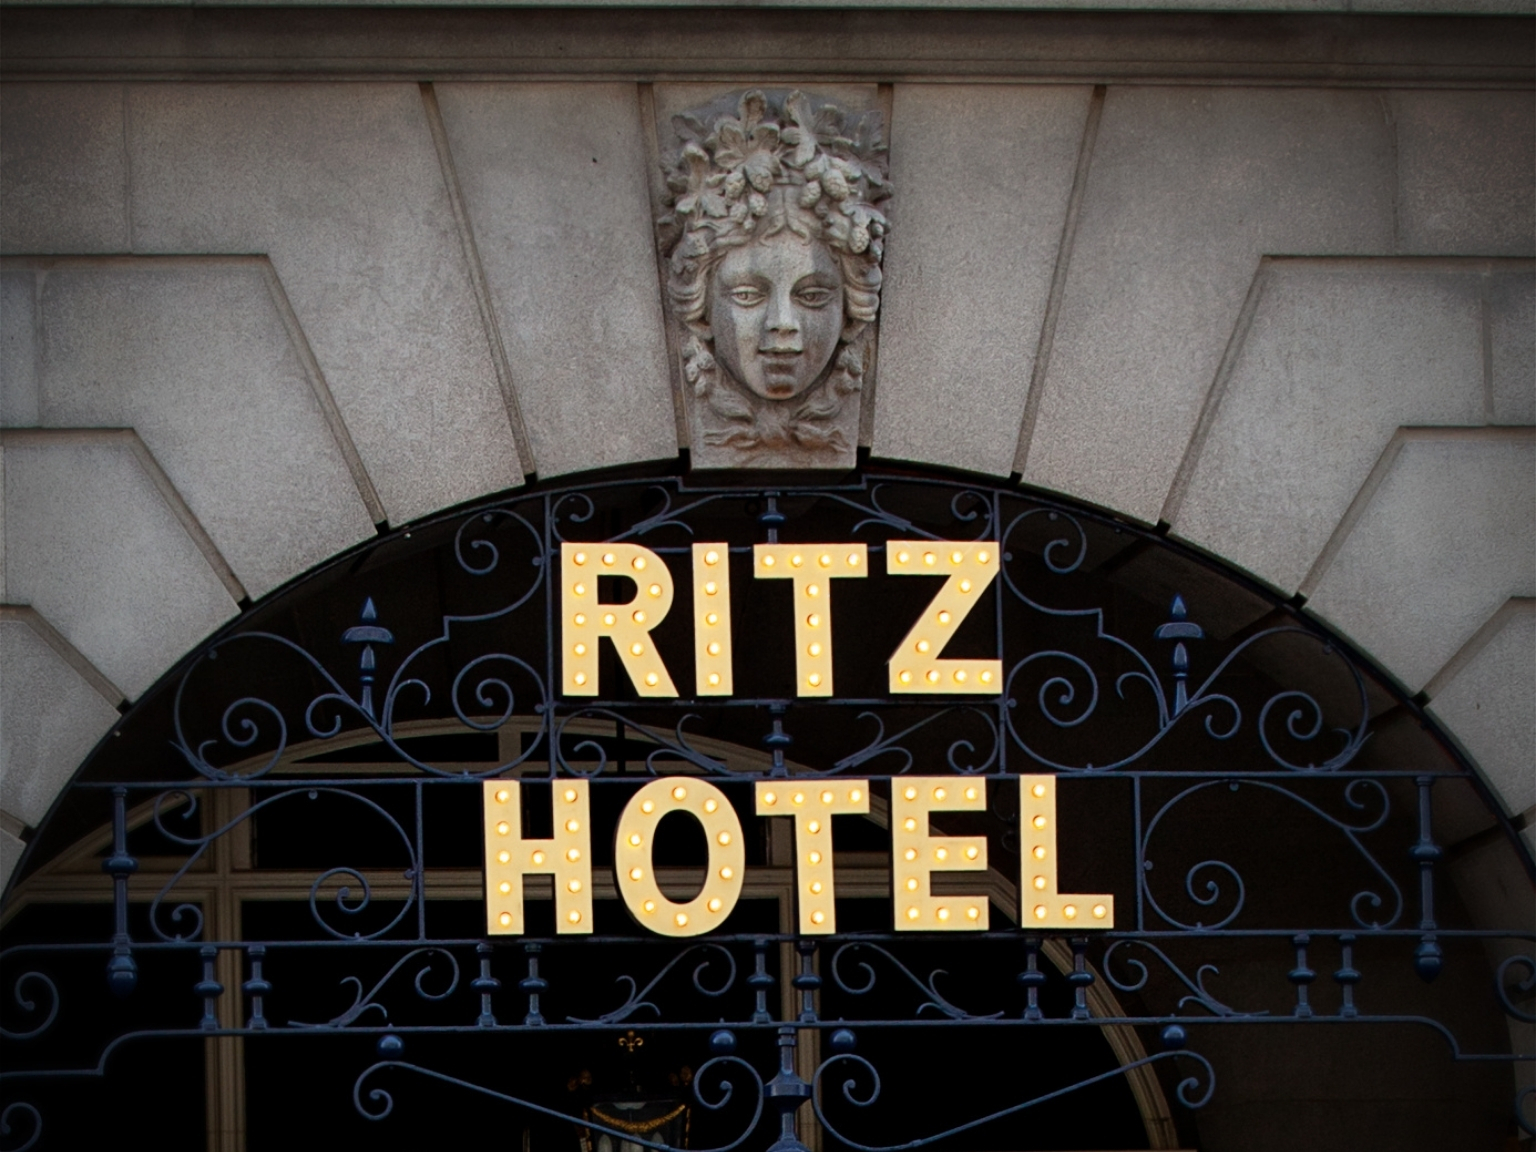 Entrance to the Ritz Hotel